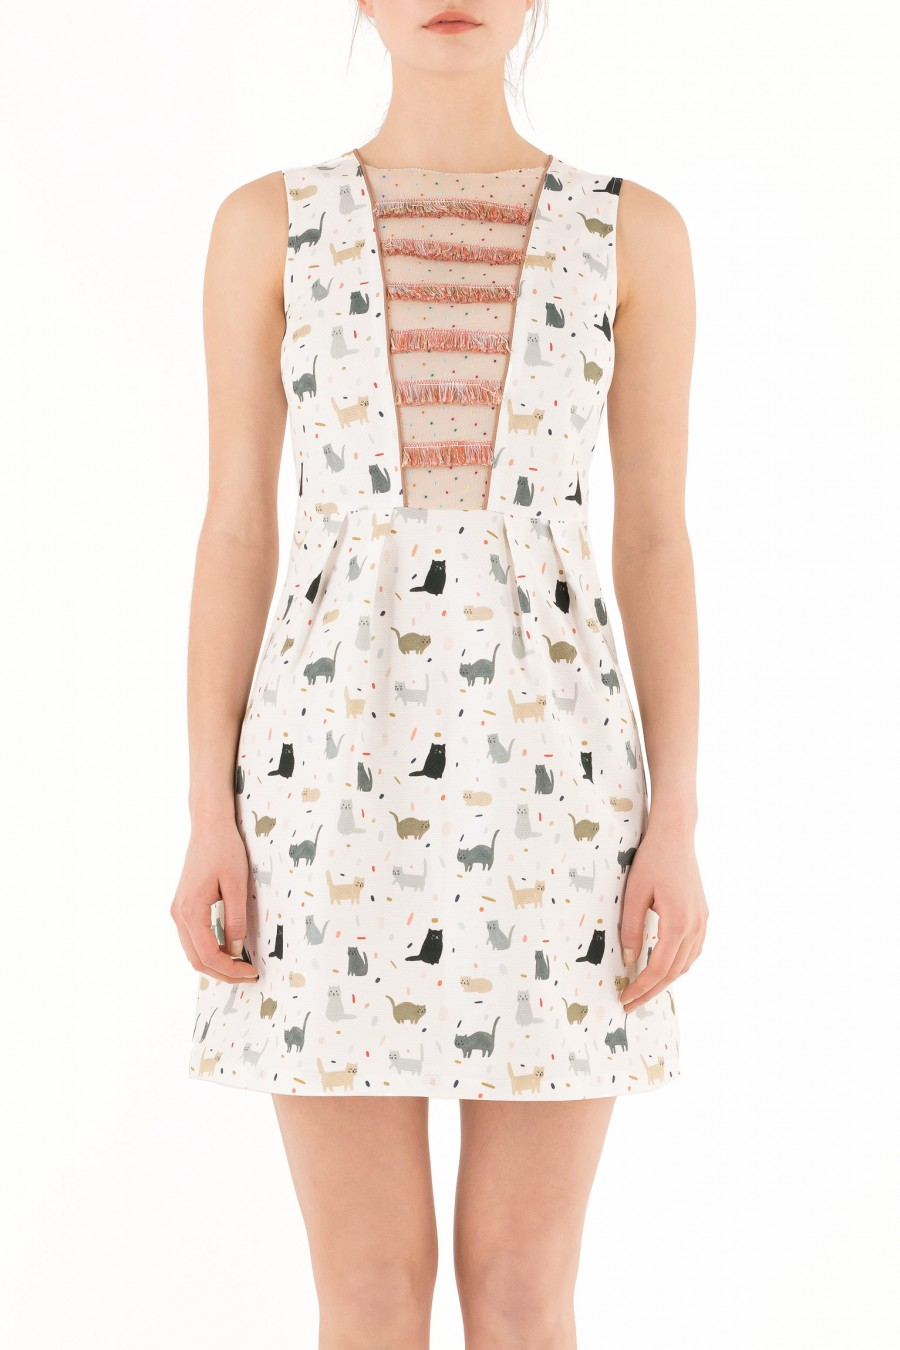 Cotton piquet dress with cats